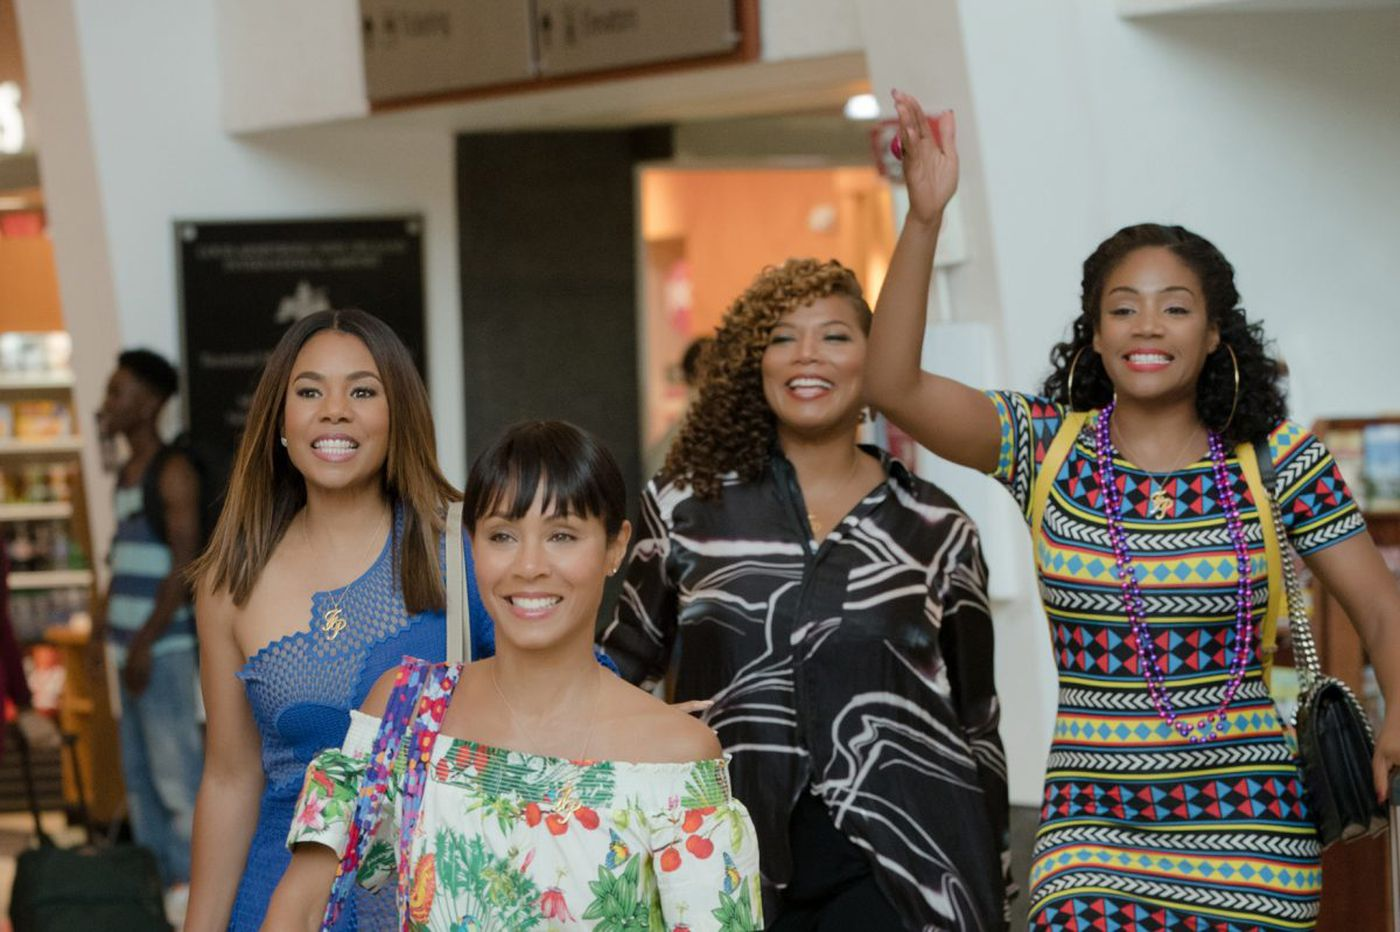 'Girls Trip' is a raunchy but good-natured comedy